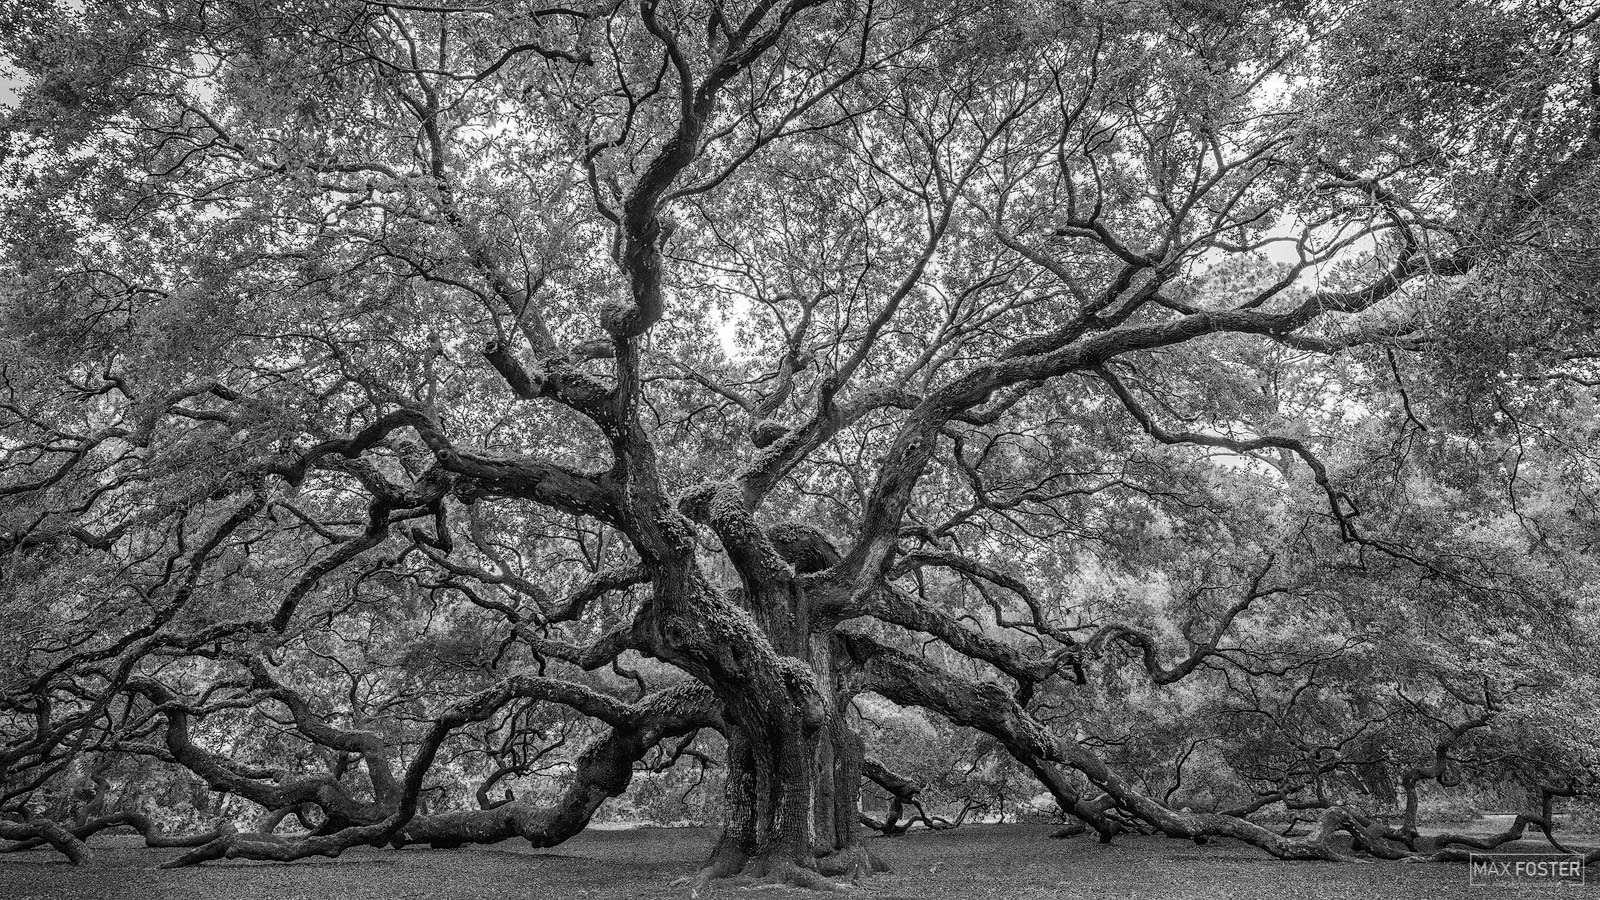 Fine Art Limited Edition of 100 The black and white or monochrome version of Angel Wings, a famous live oak in Angel Oak Park...